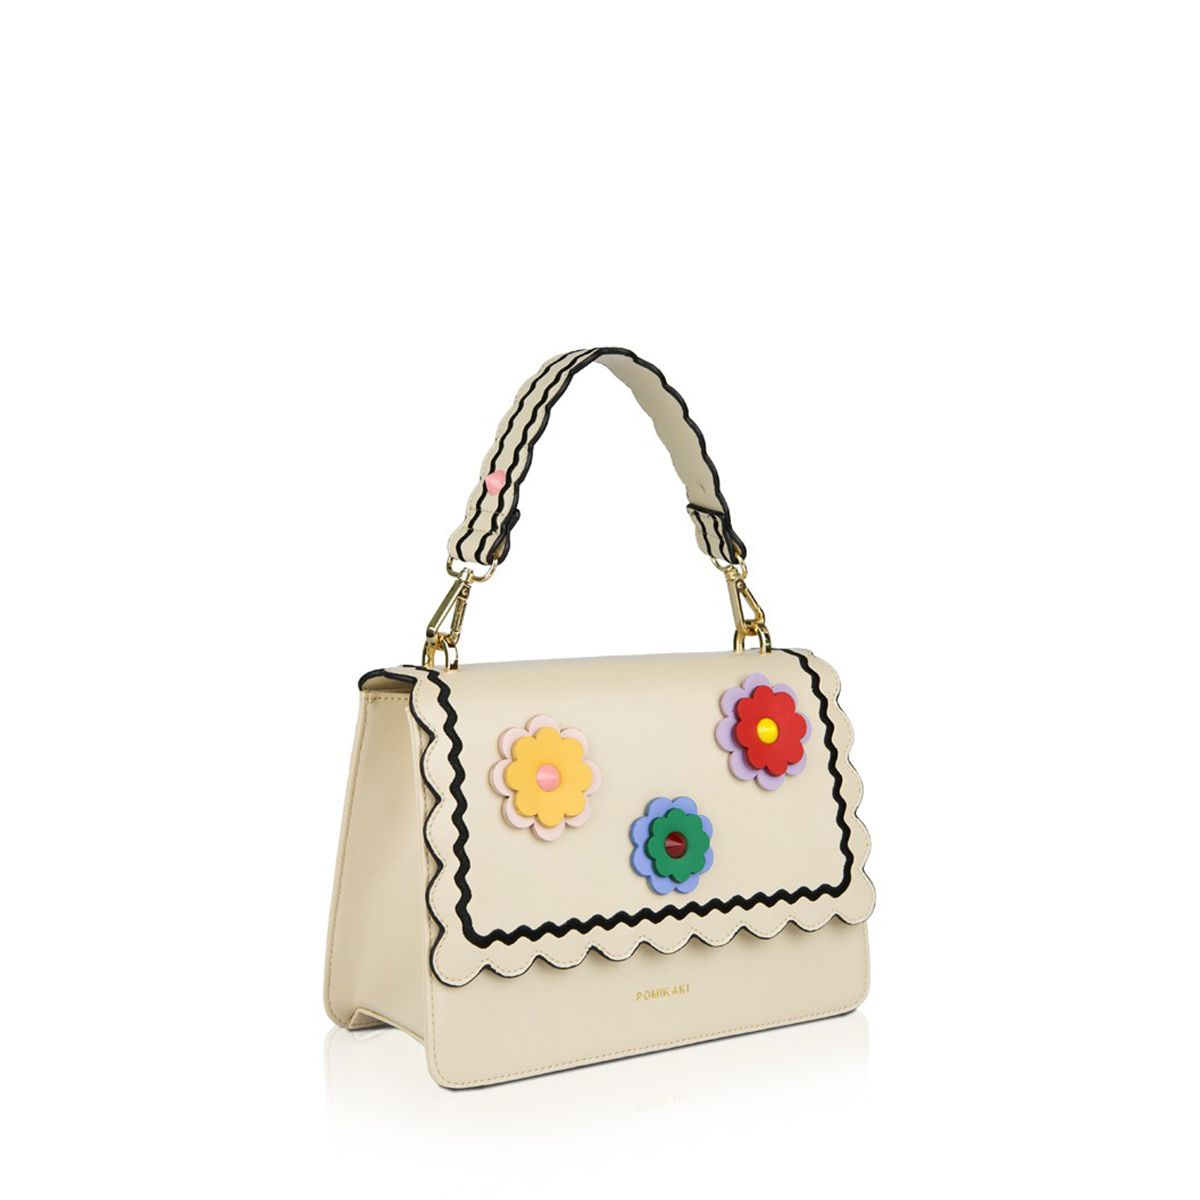 Handbag Gwen Flowers Pomikaki CREAM